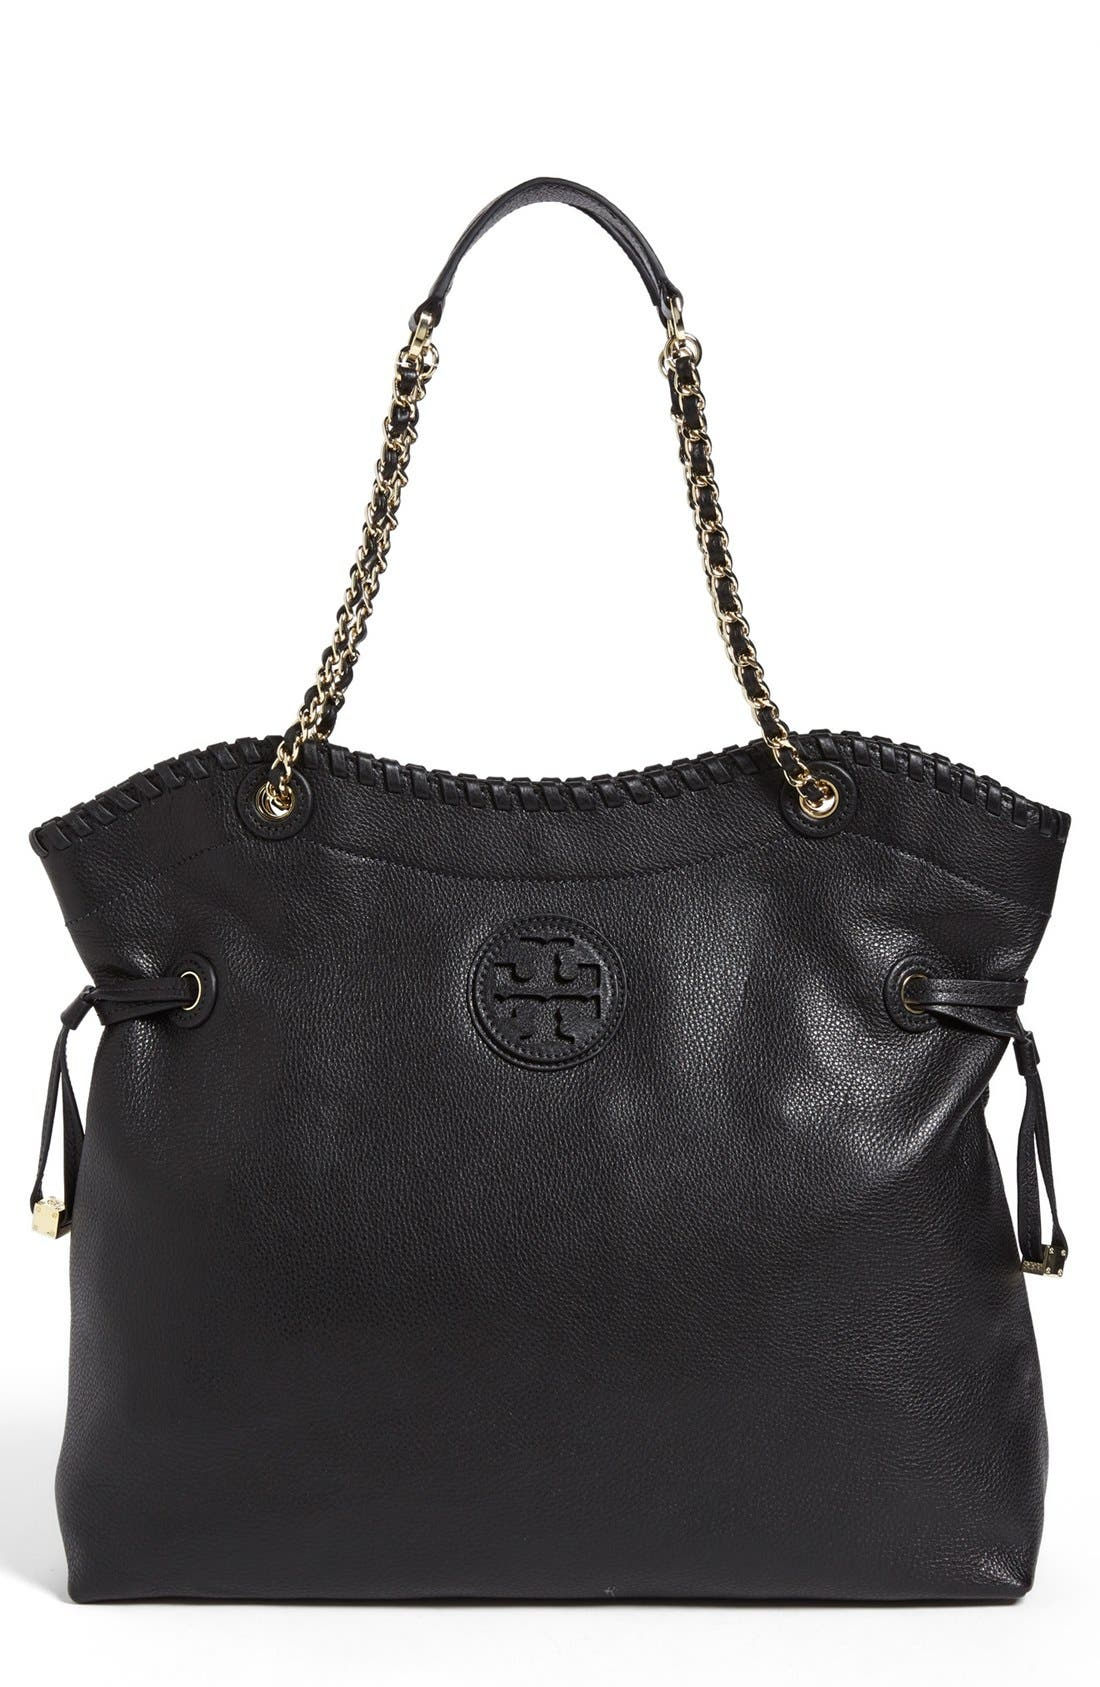 Alternate Image 1 Selected - Tory Burch 'Marion' Tote